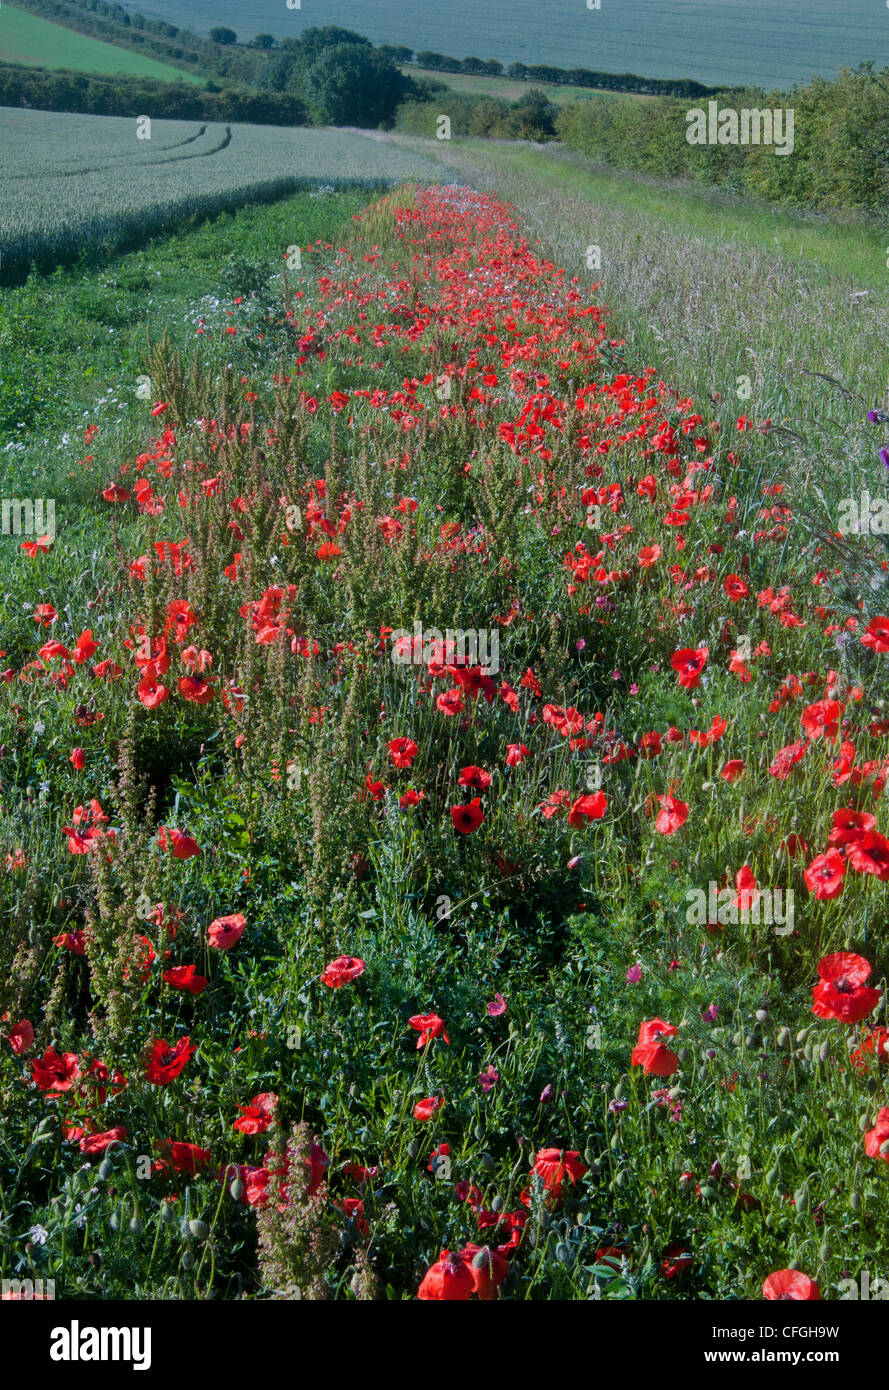 english countrside and poppies on the edge of field - Stock Image